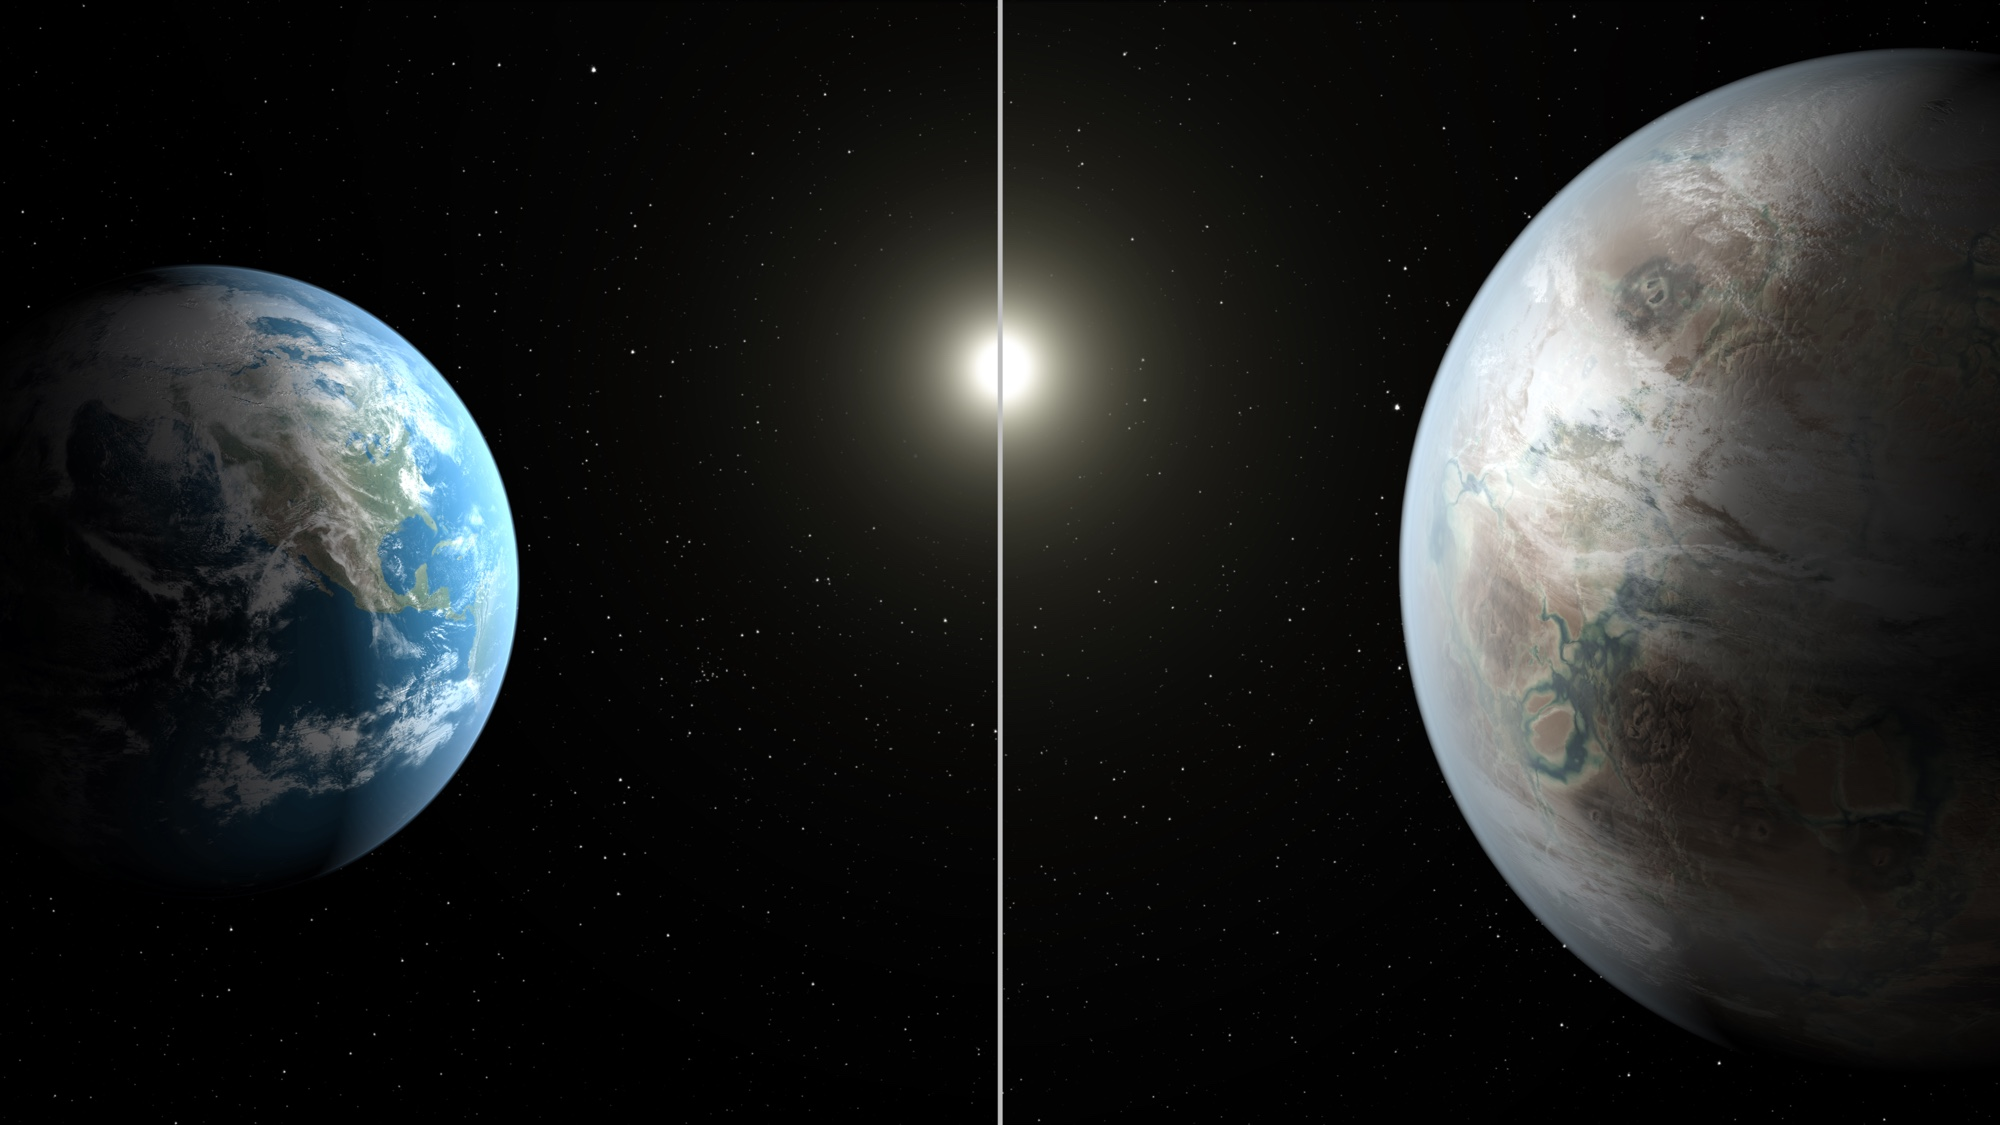 This artist's concept compares Earth (left) to the new planet, called Kepler-452b, which is about 60 percent larger in diameter. NASA/JPL-Caltech/T. Pyle